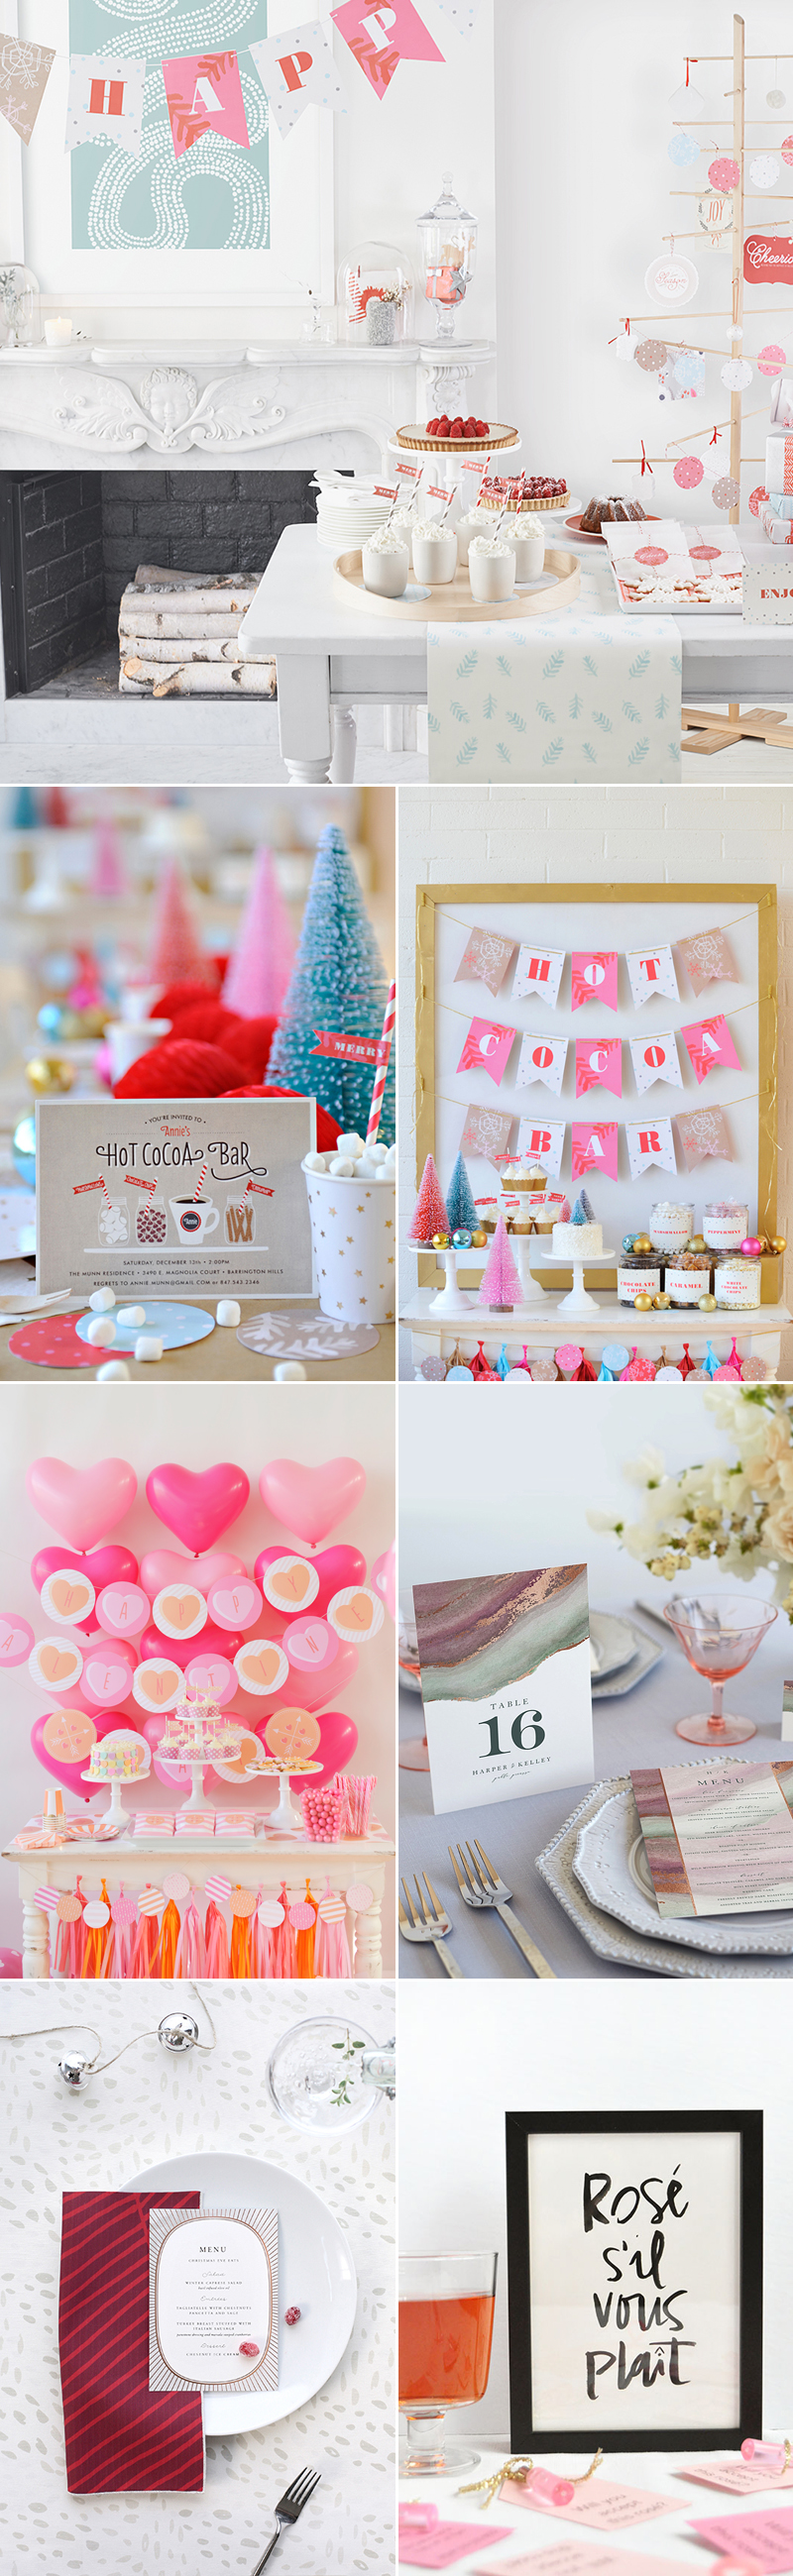 DIY Party05-Minted